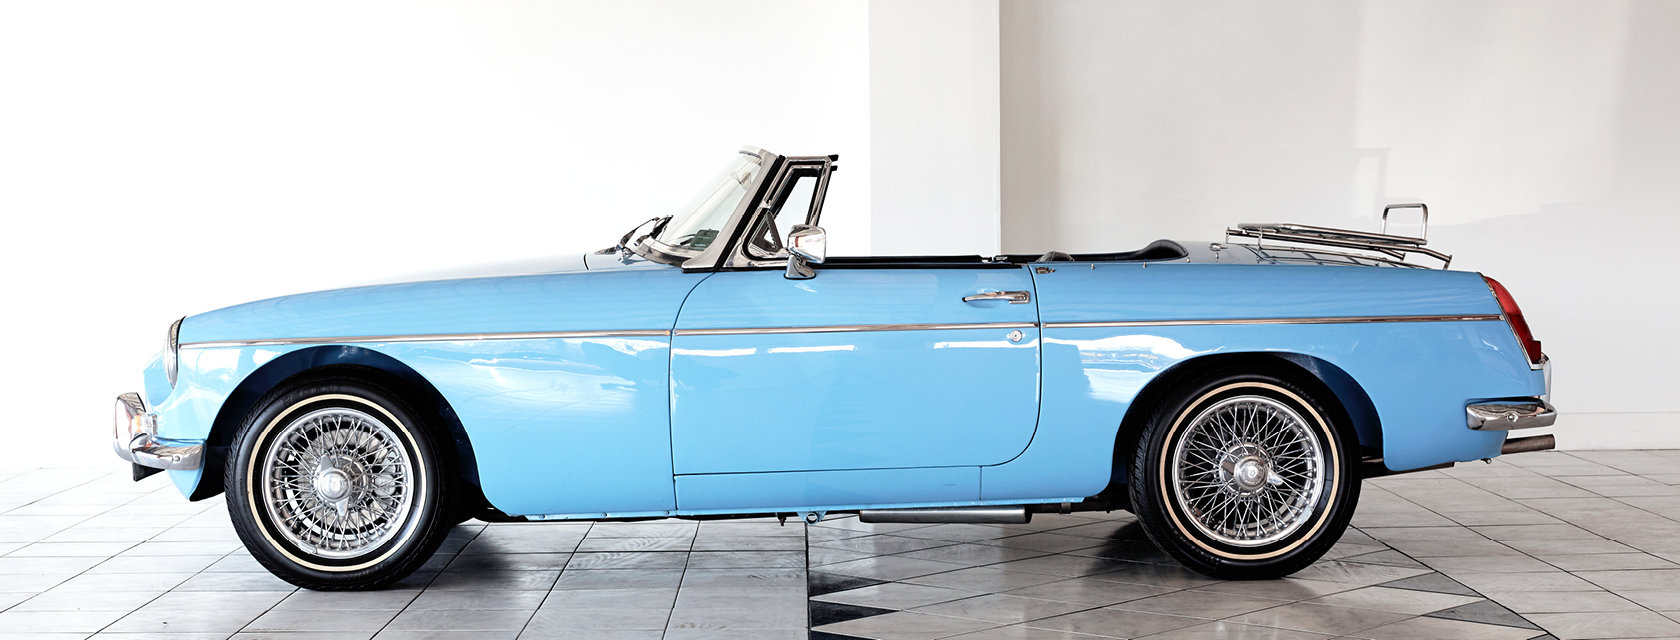 1963 B ROADSTER SERIES 1  For Sale (picture 2 of 10)